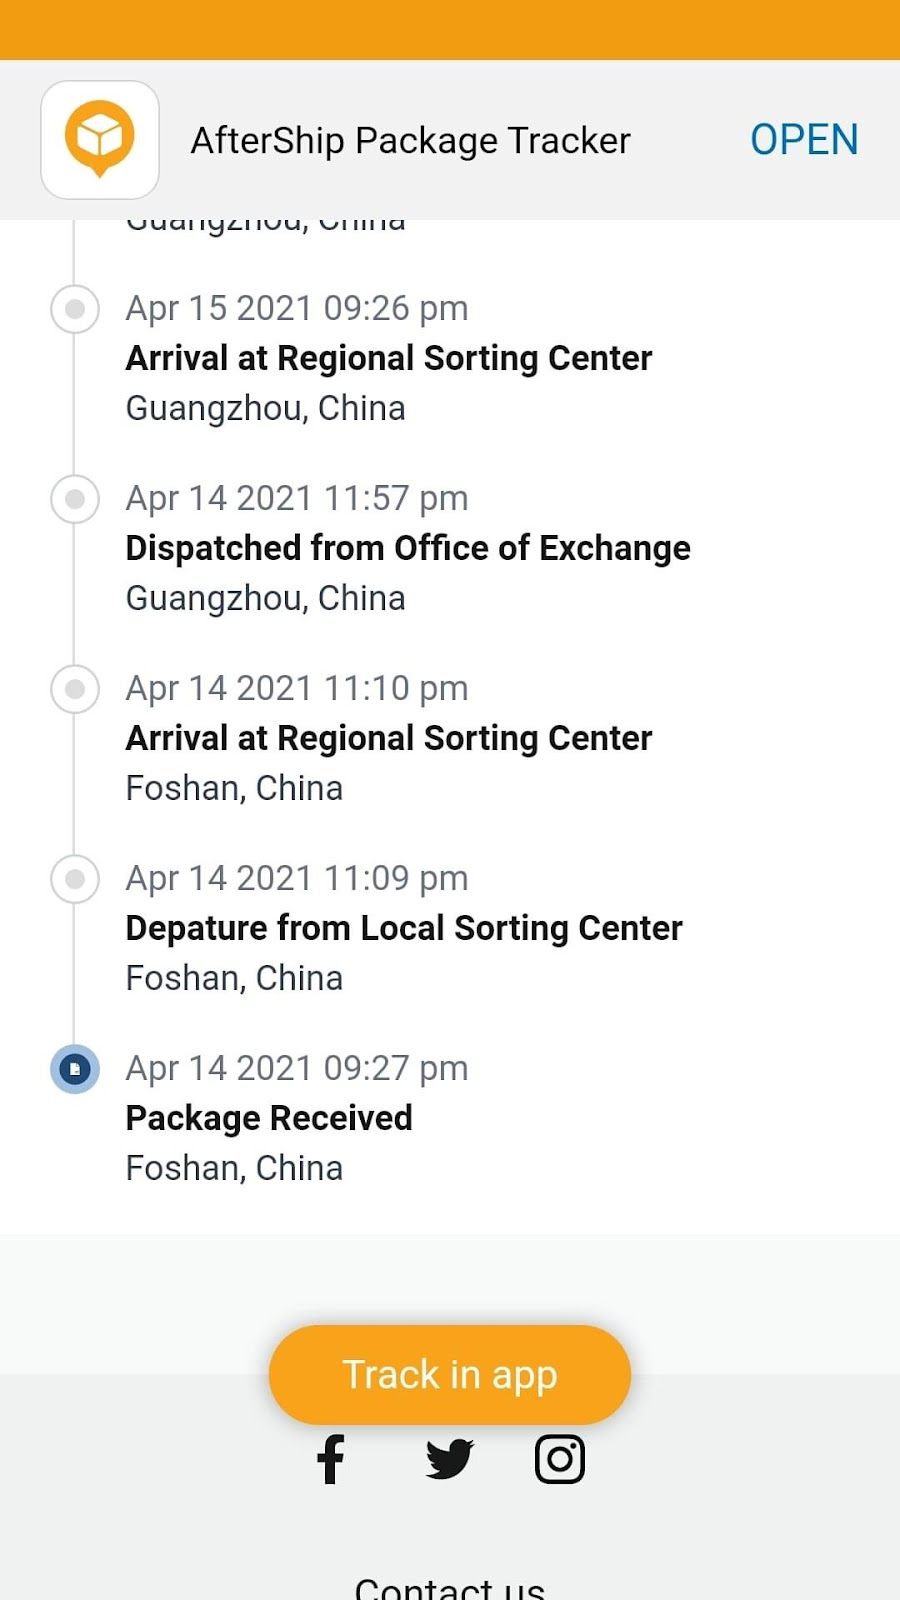 AfterShip Tracking a Package from China